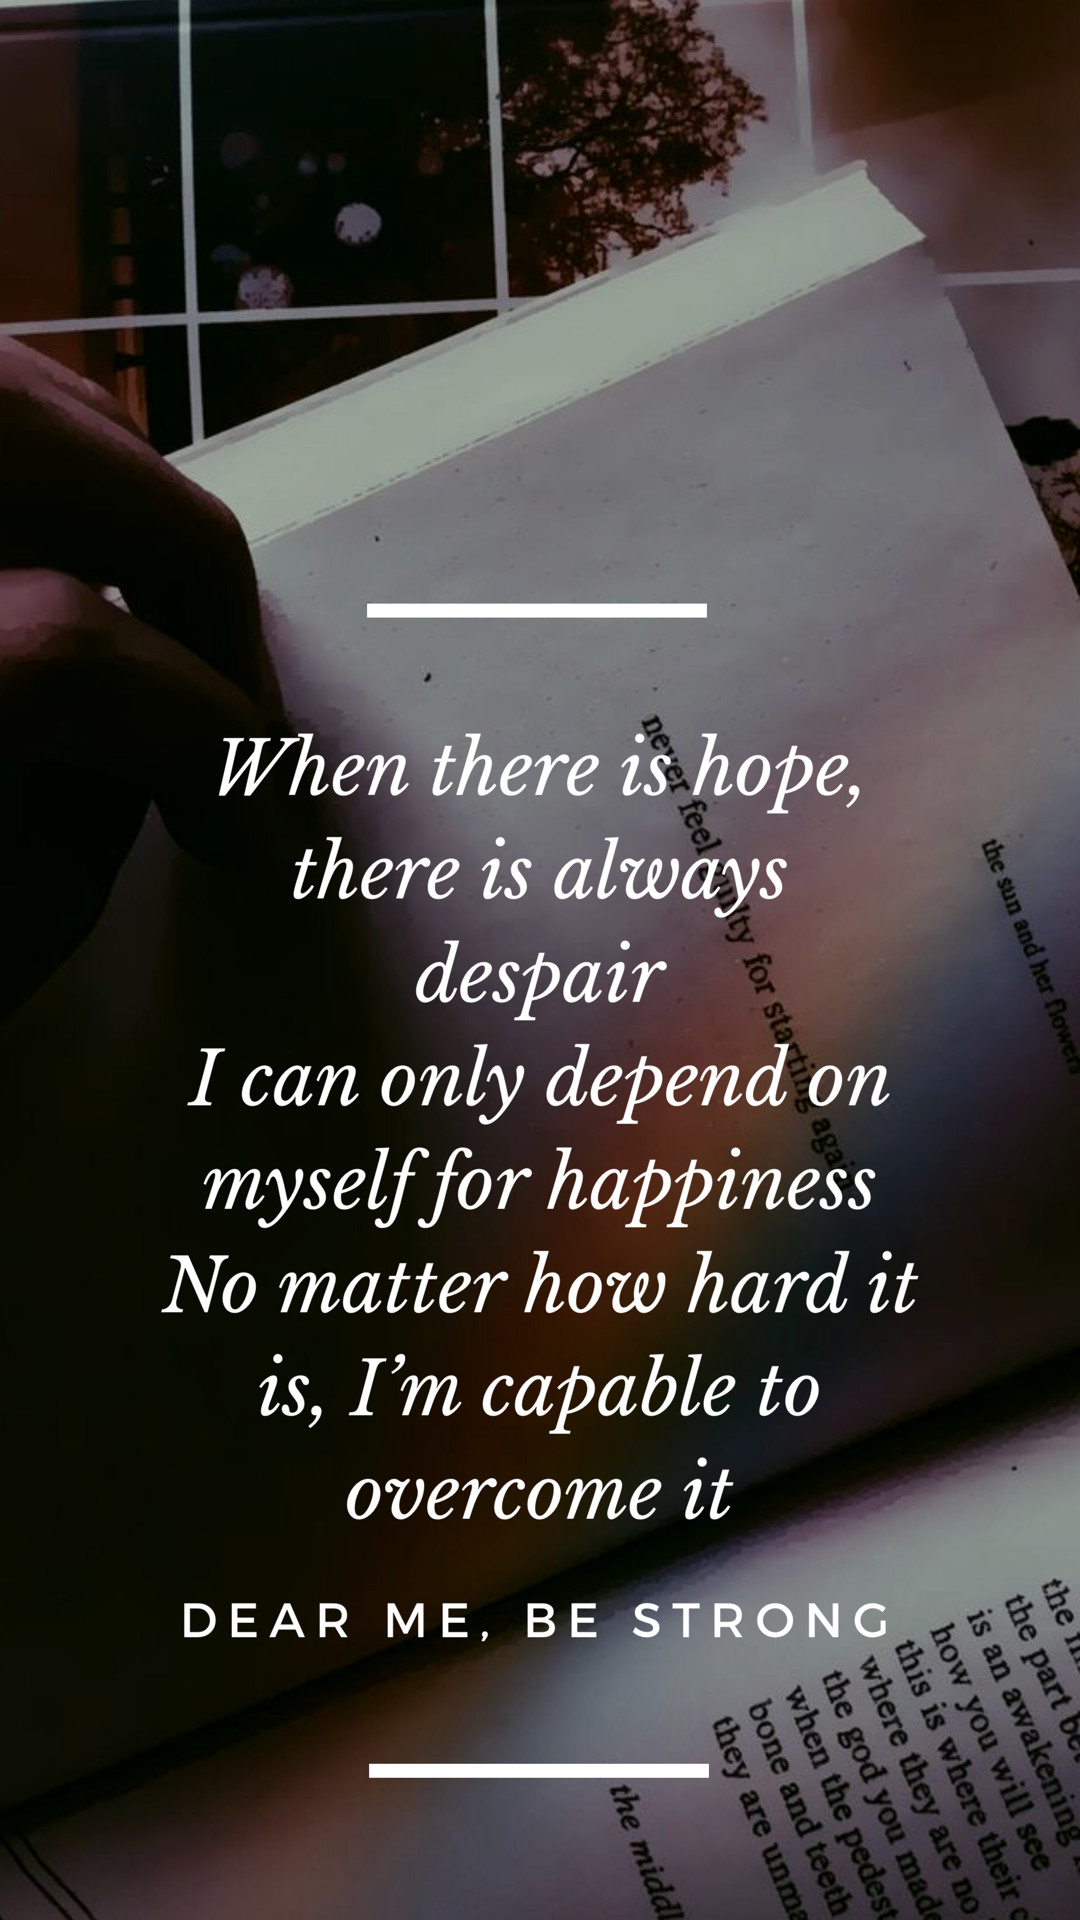 Iphone Wallpaper Aesthetic Quotes Bts Strong Sea Bts Lyrics Quotes Bts Wallpaper Lyrics Inspirational Quotes Wallpapers